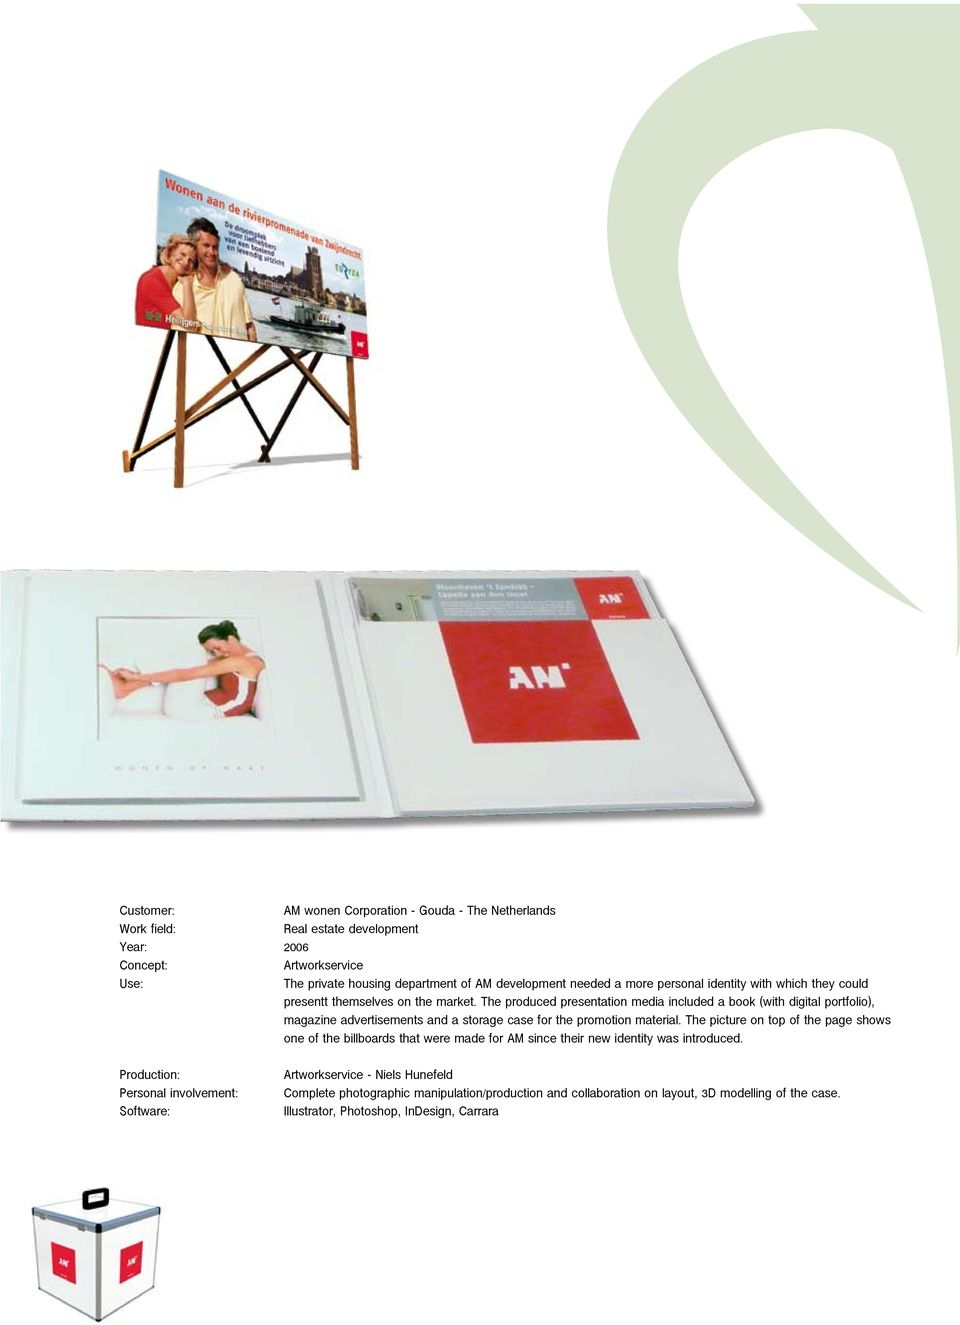 The produced presentation media included a book (with digital portfolio), magazine advertisements and a storage case for the promotion material.